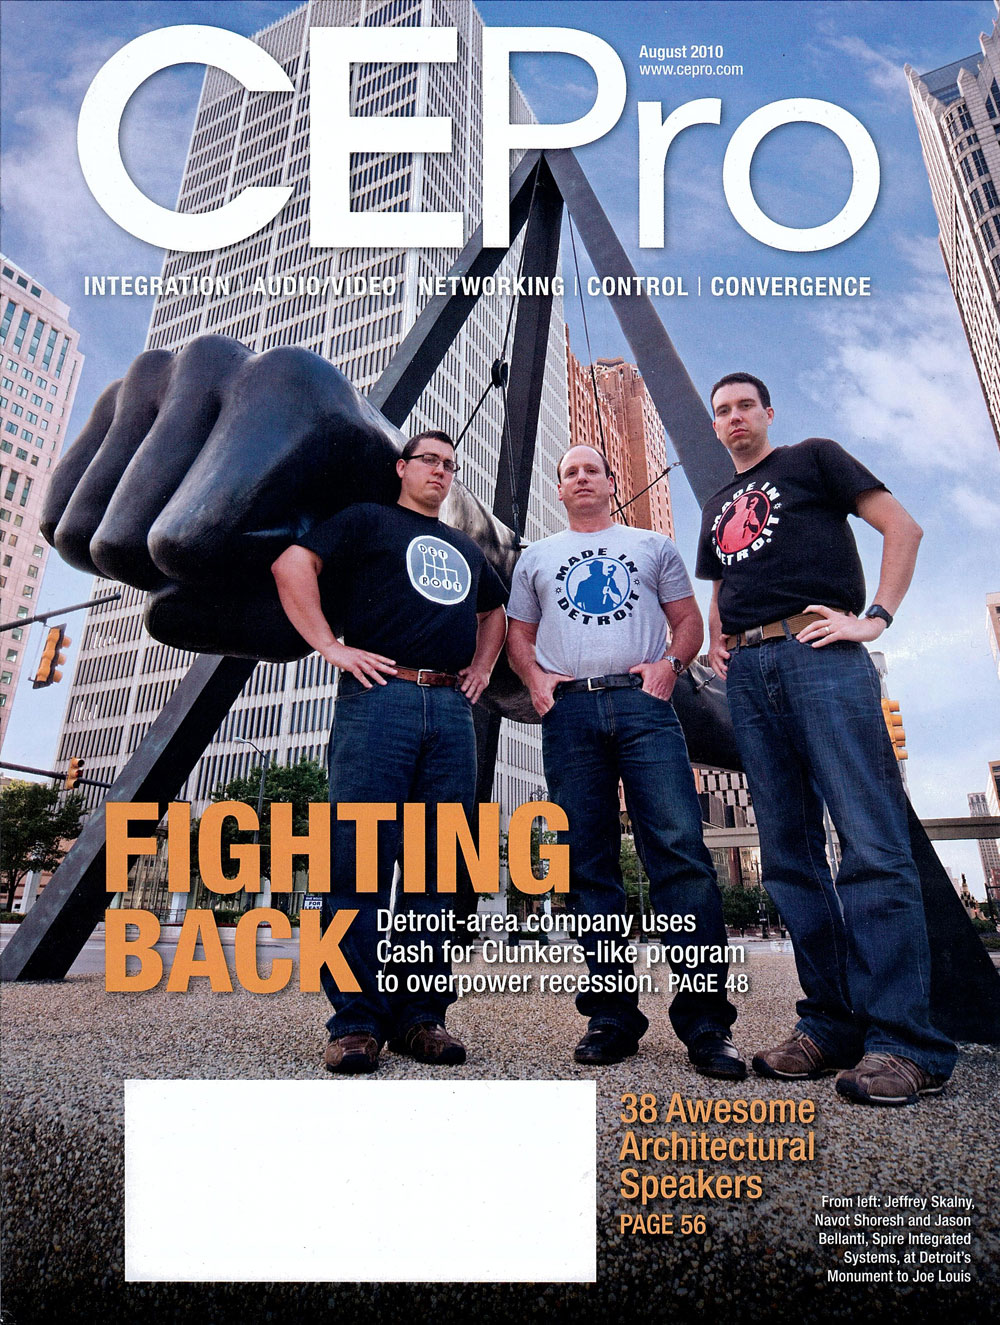 Featured in CEPro Magazine: August 2010